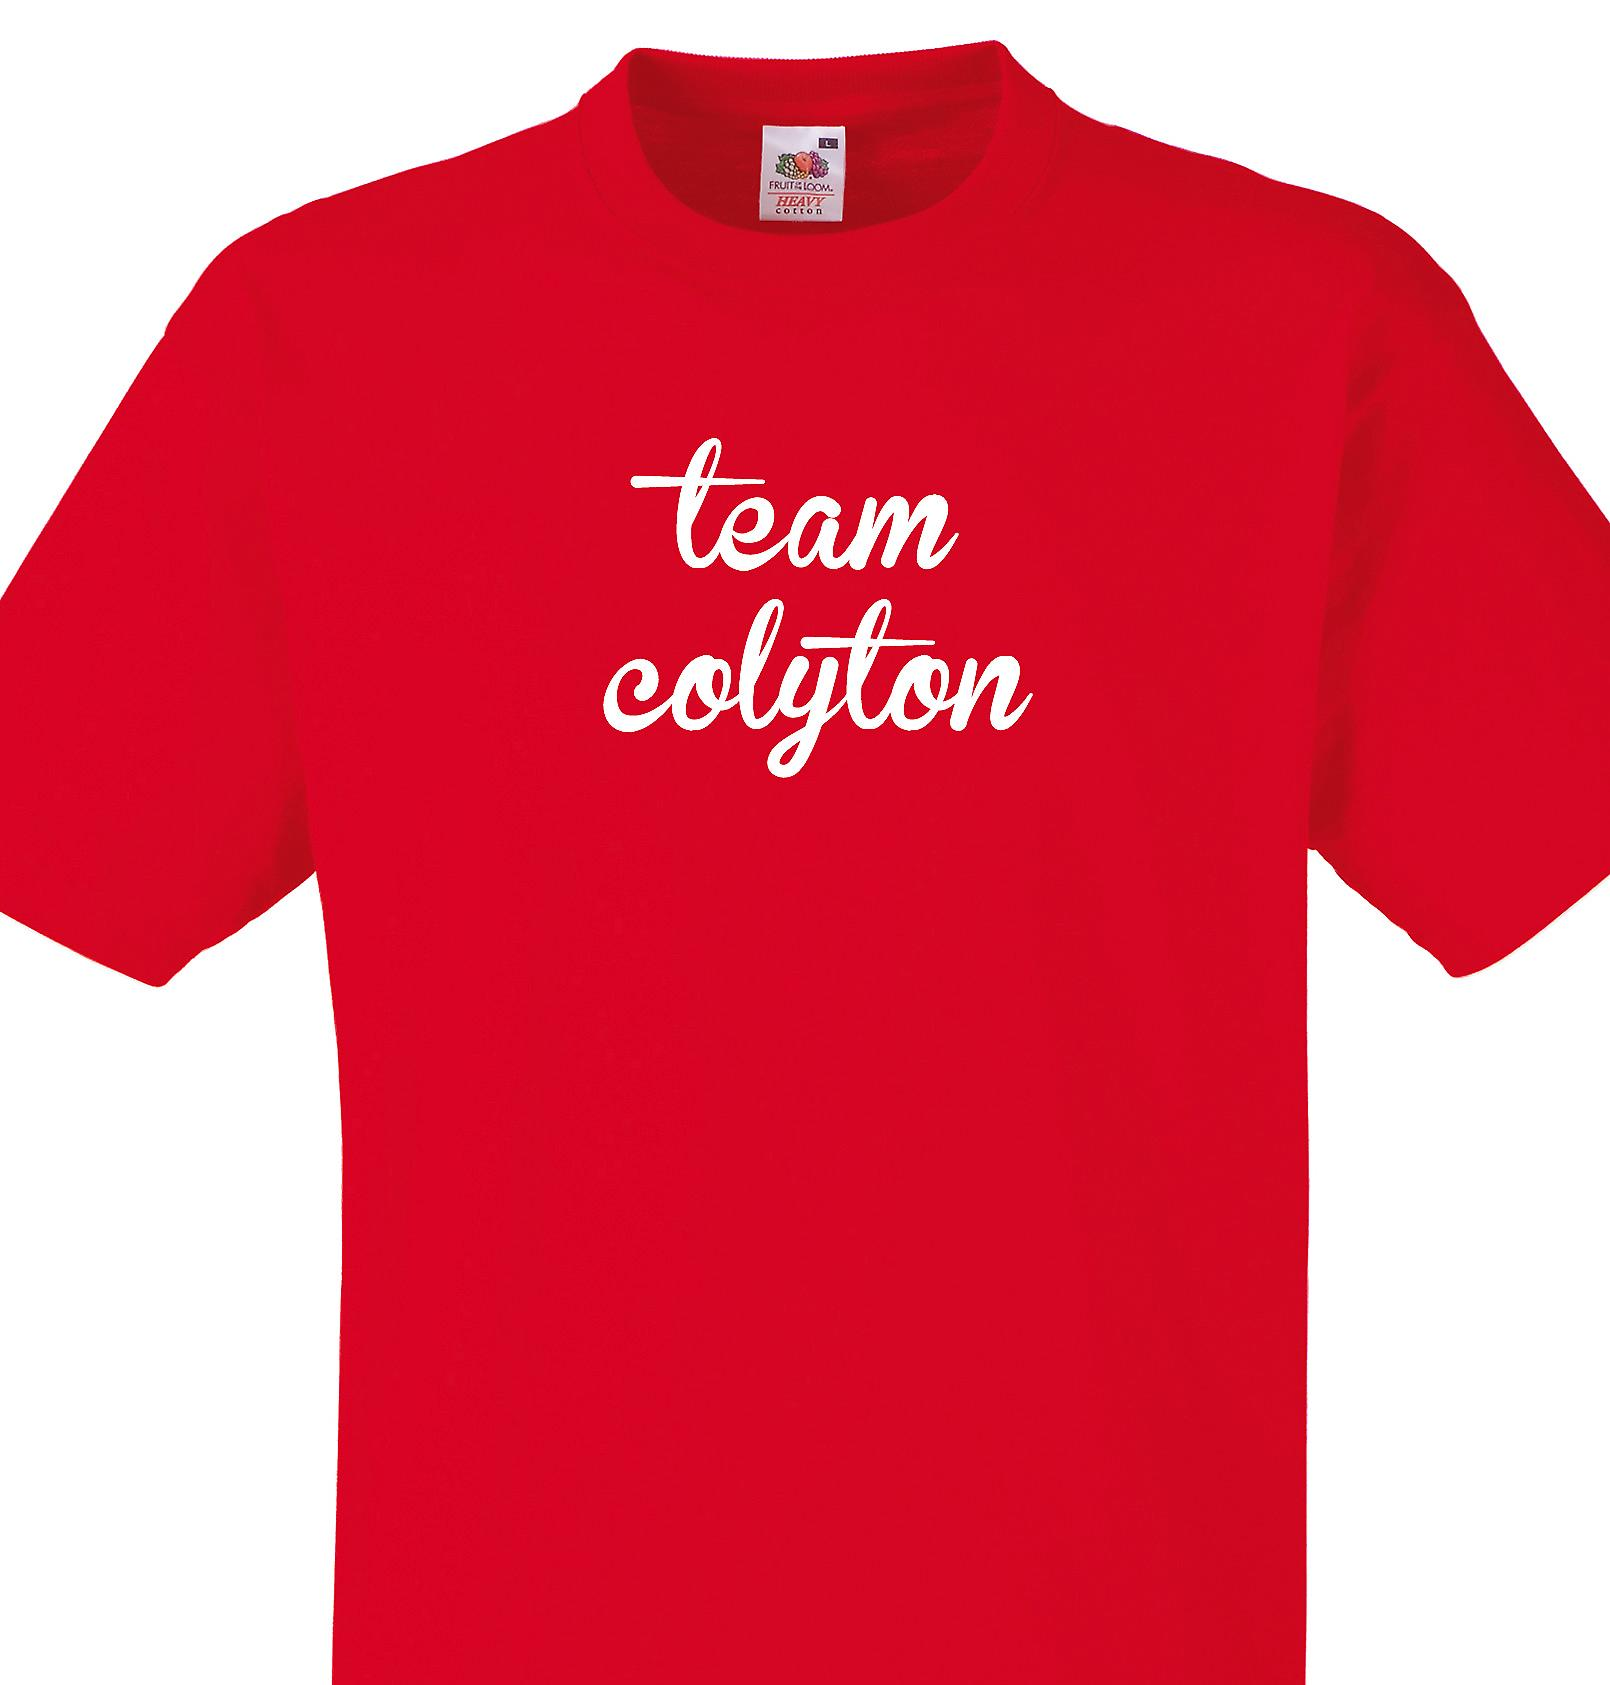 Team Colyton Red T shirt